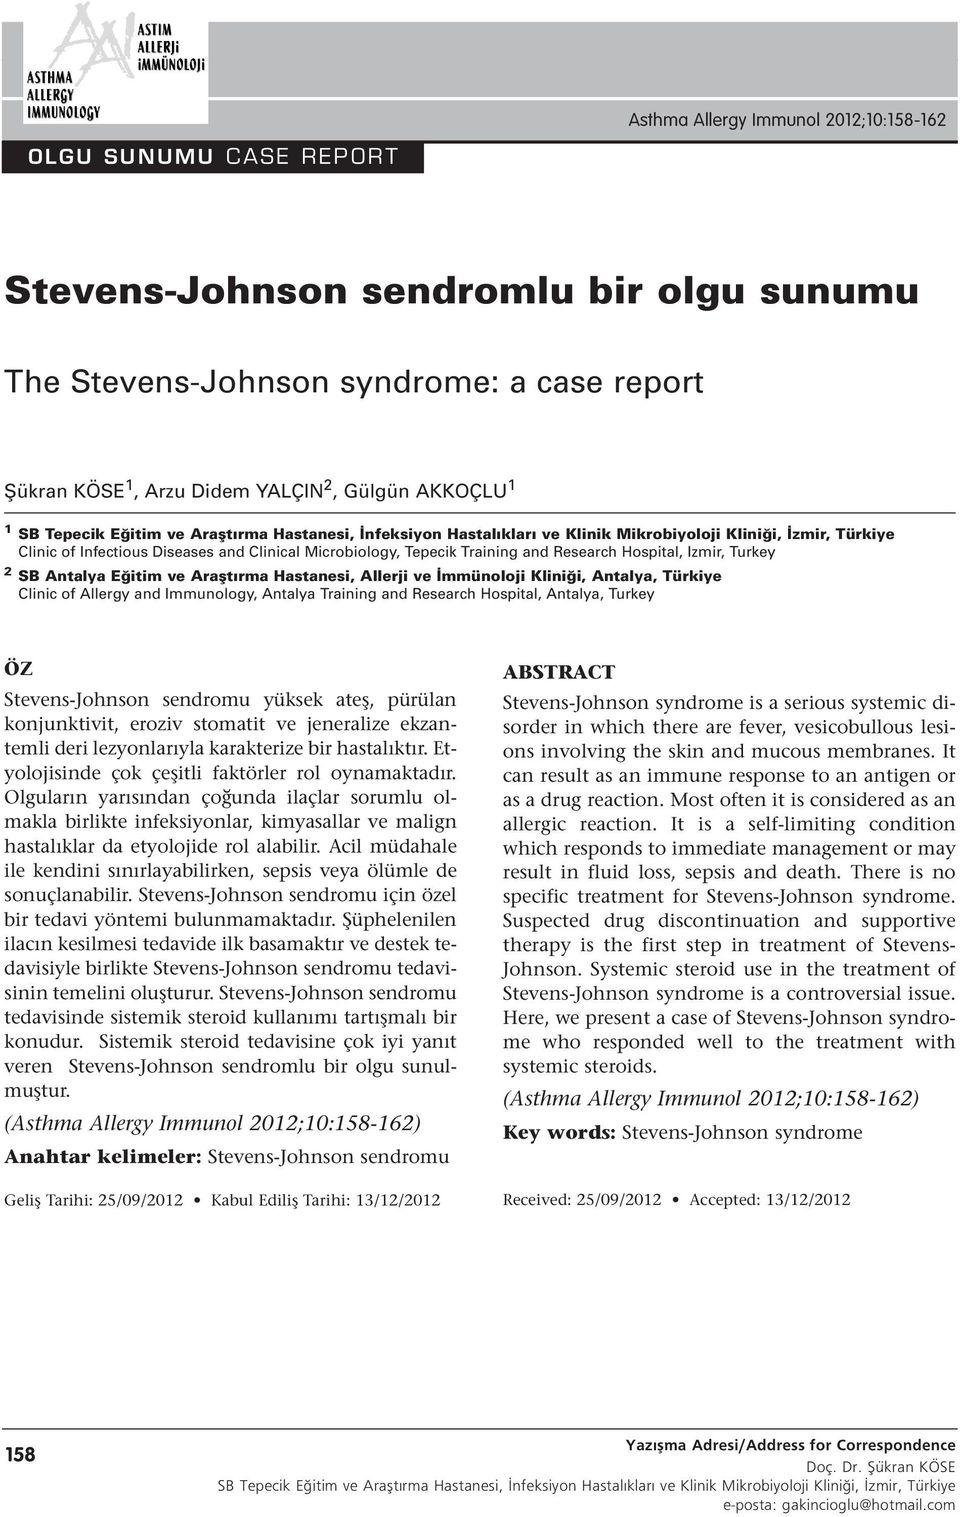 Antalya Eğitim ve Araştırma Hastanesi, Allerji ve İmmünoloji Kliniği, Antalya, Türkiye Clinic of Allergy and Immunology, Antalya Training and Research Hospital, Antalya, Turkey ÖZ Stevens-Johnson